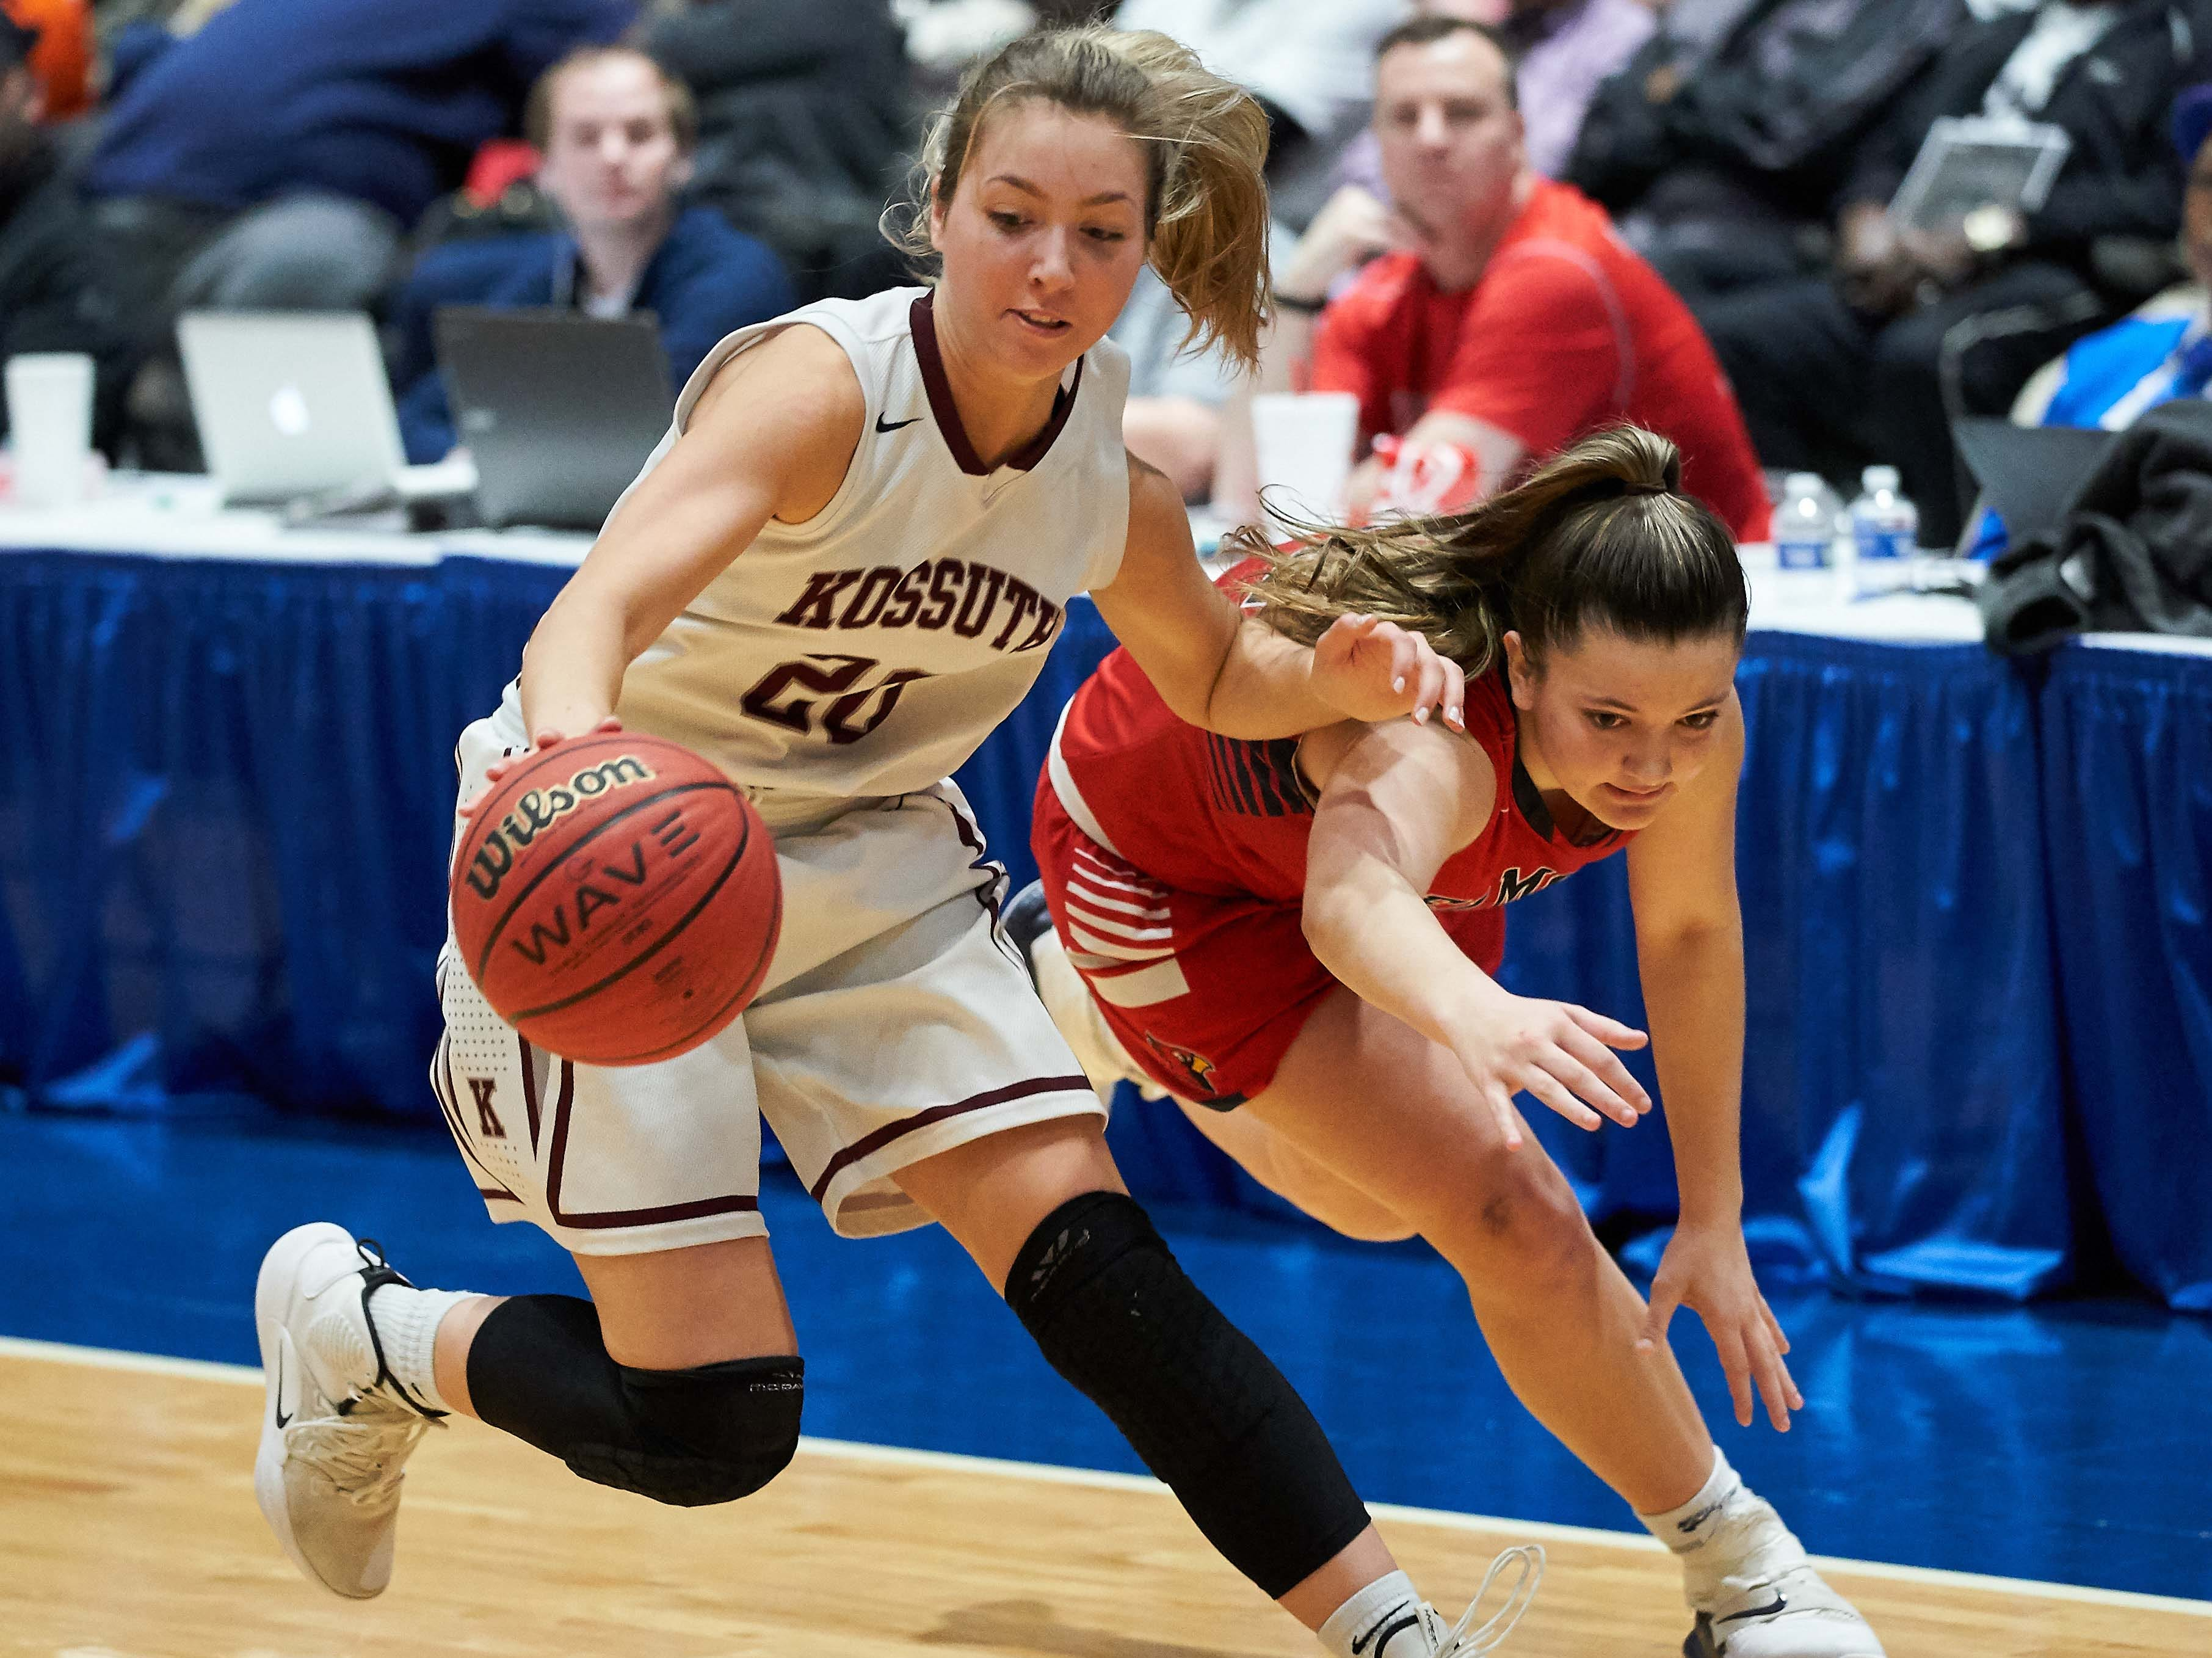 Kossuth's Madison Starling (20) steals the ball from Belmont's Lacie Walker  during the MHSAA 3A Girls Basketball Championship Finals held at the Mississippi Coliseum in Jackson, MS, Saturday March 9th, 2019.(Bob Smith)